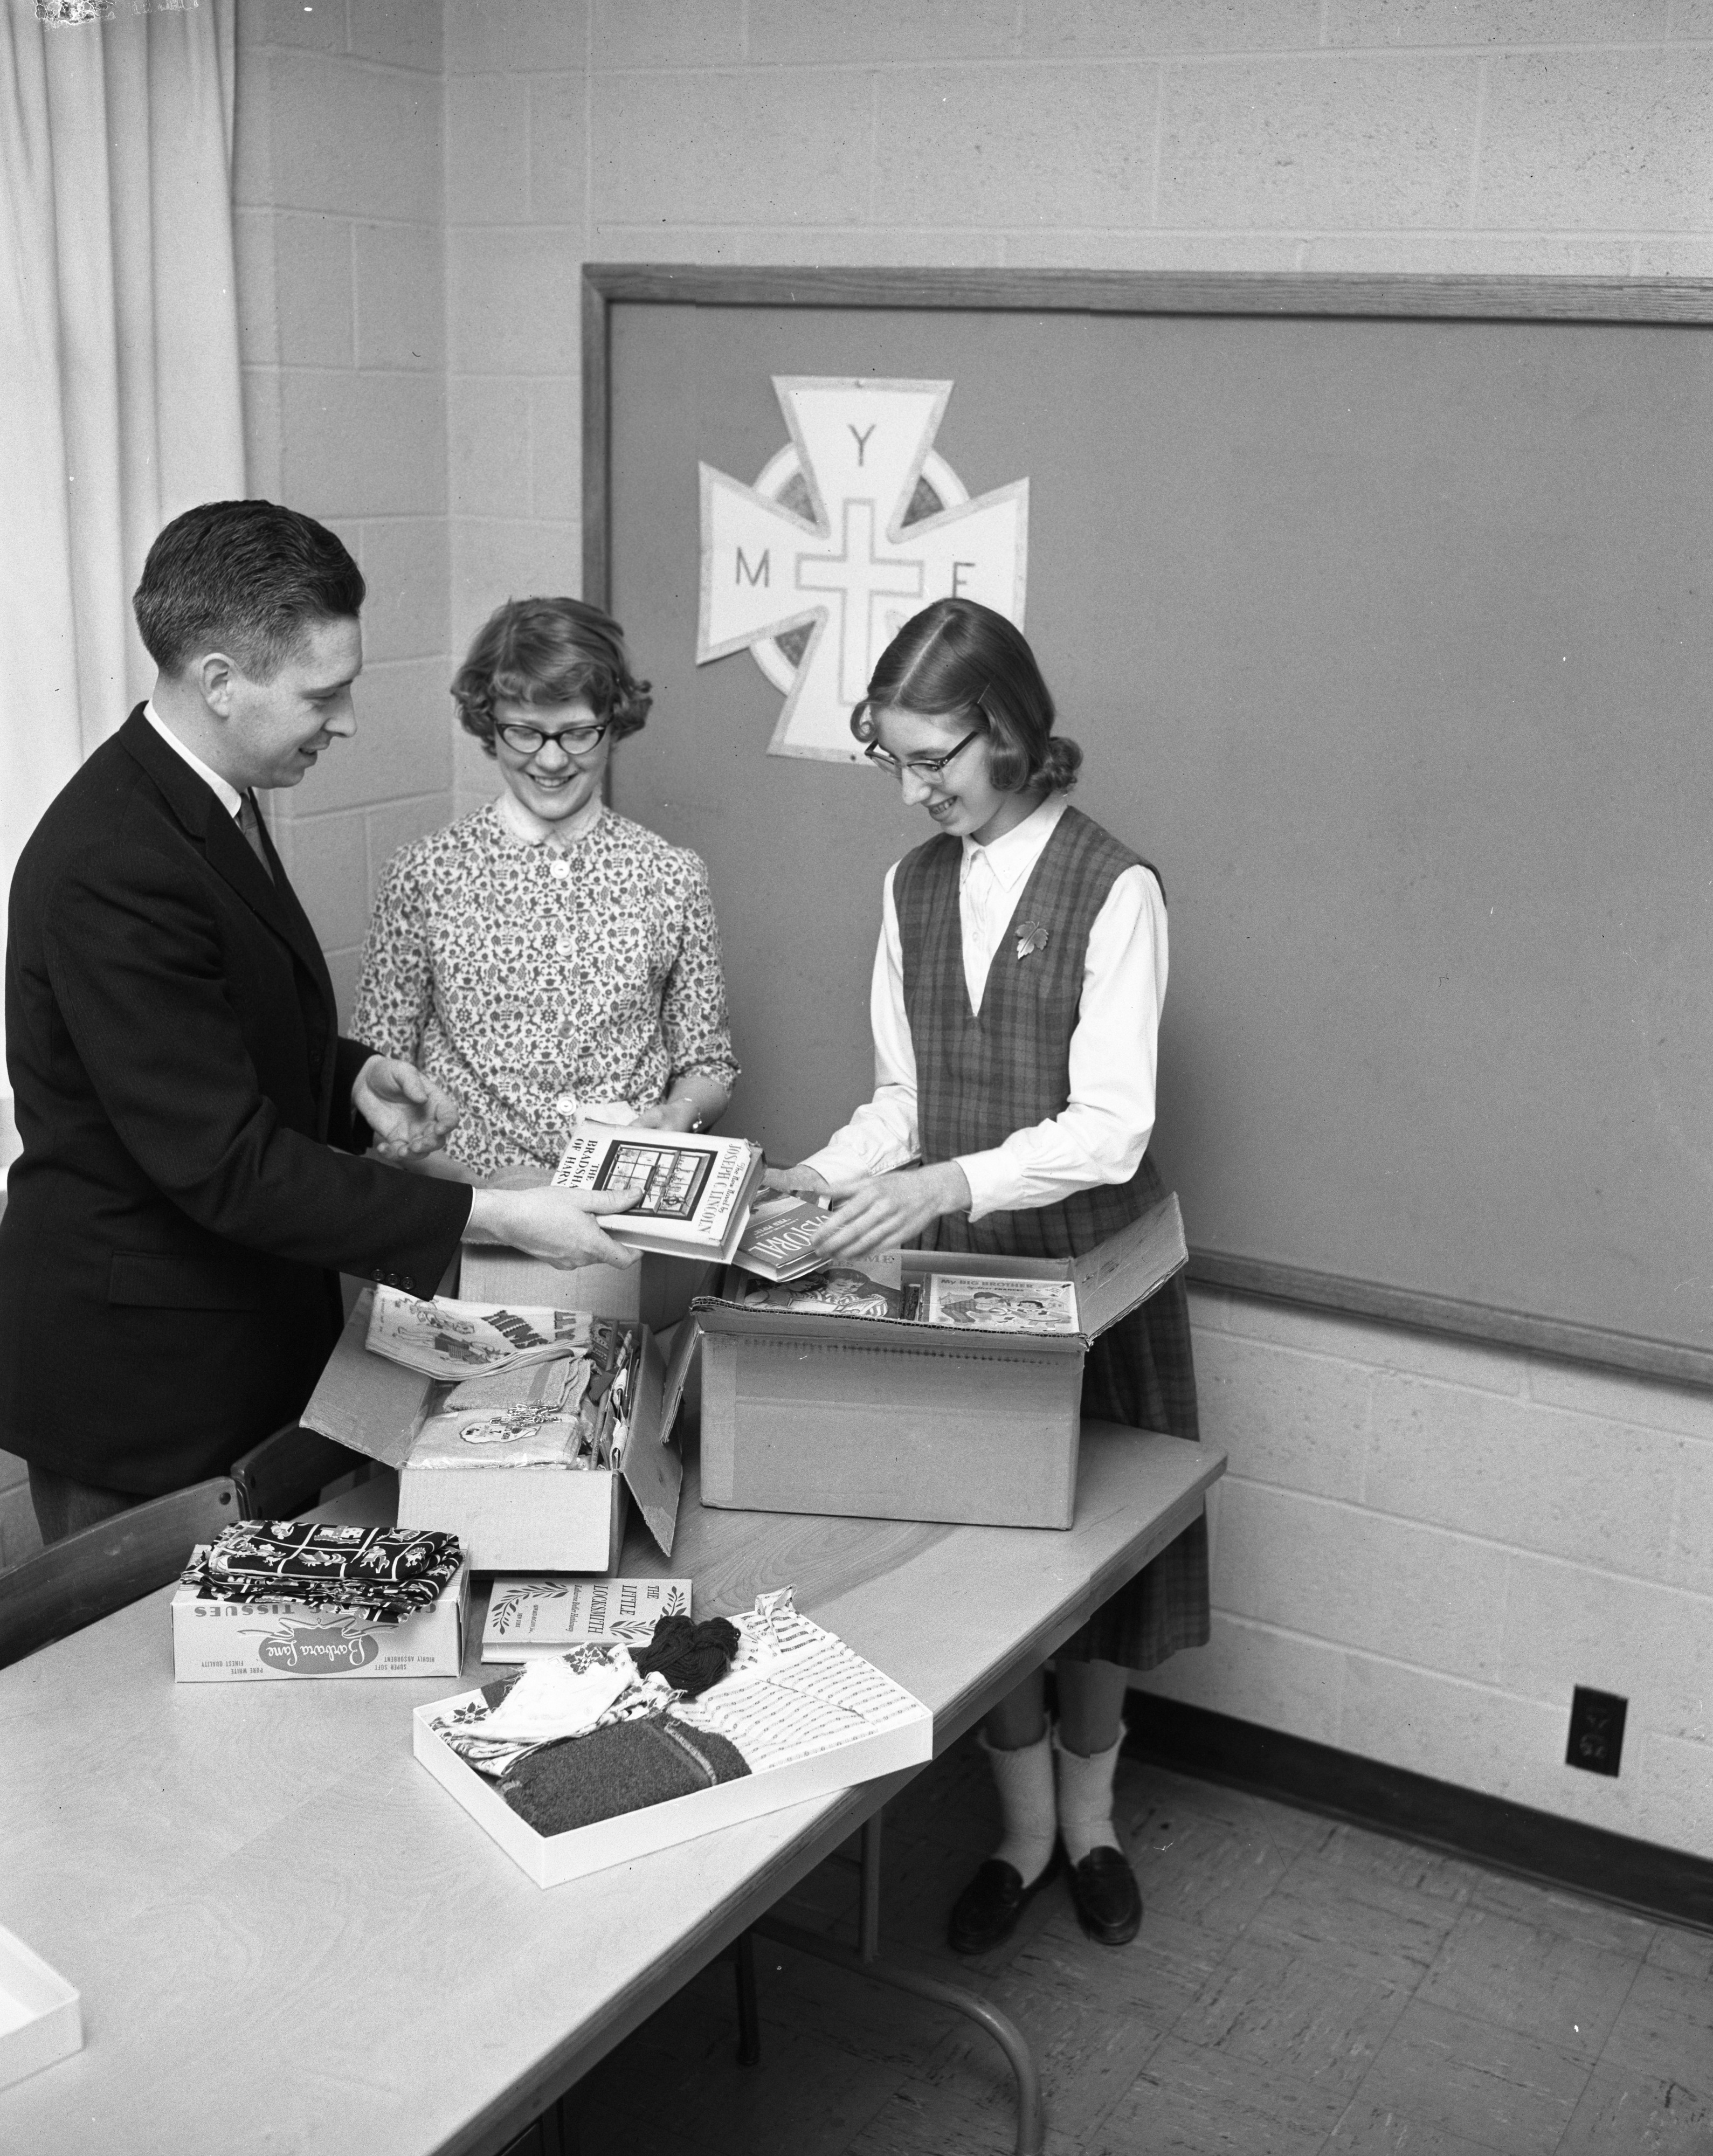 Rev. Kendall Cowing, Katie Strand and Laura Van Vlack Pack Books for Marcy Center, First Methodist Church, March 1961 image